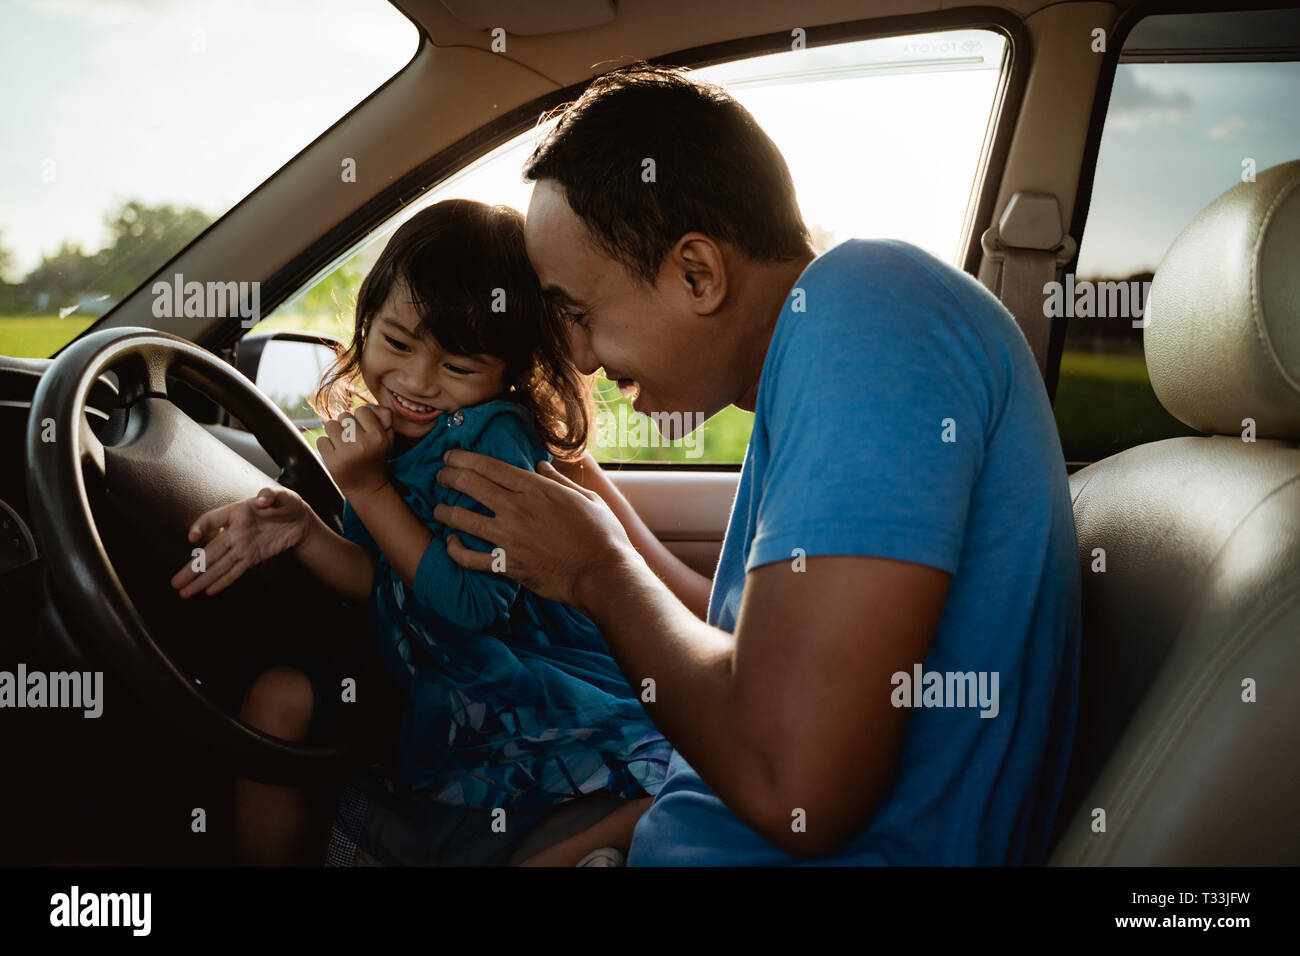 daddy tickling her little girl in the car Stock Photo